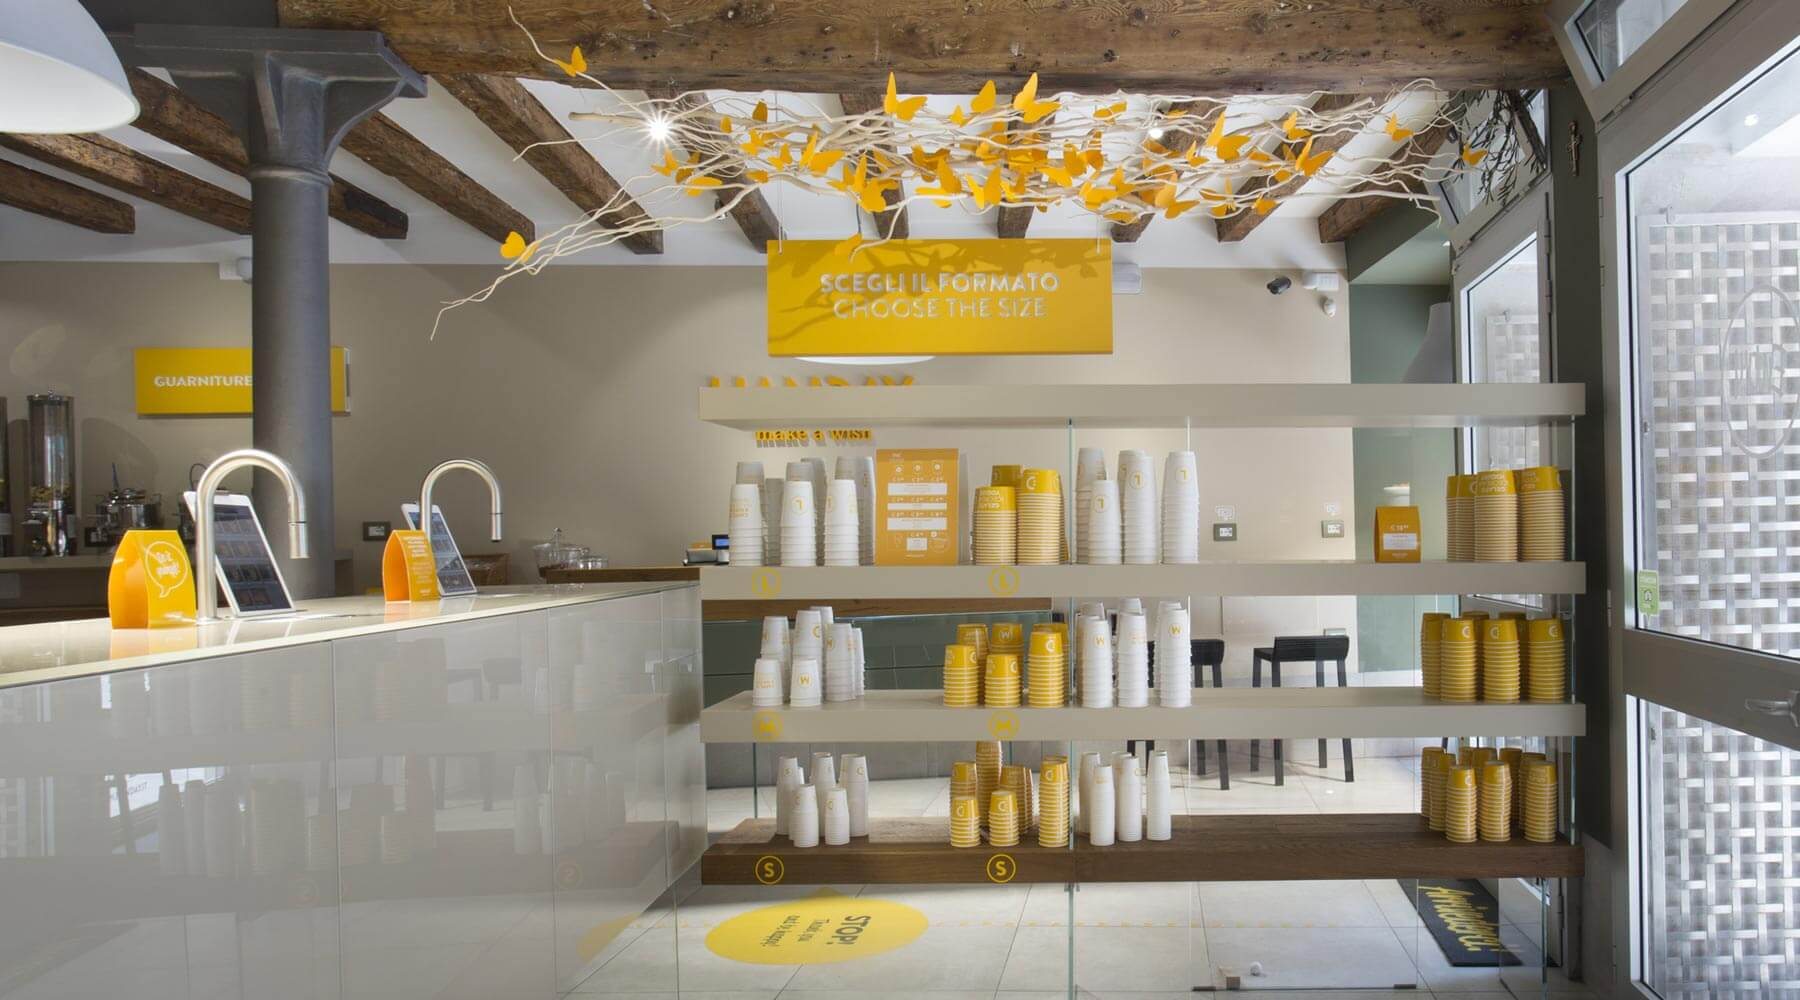 Gelateria handay mobili di design lago for Design di mobili